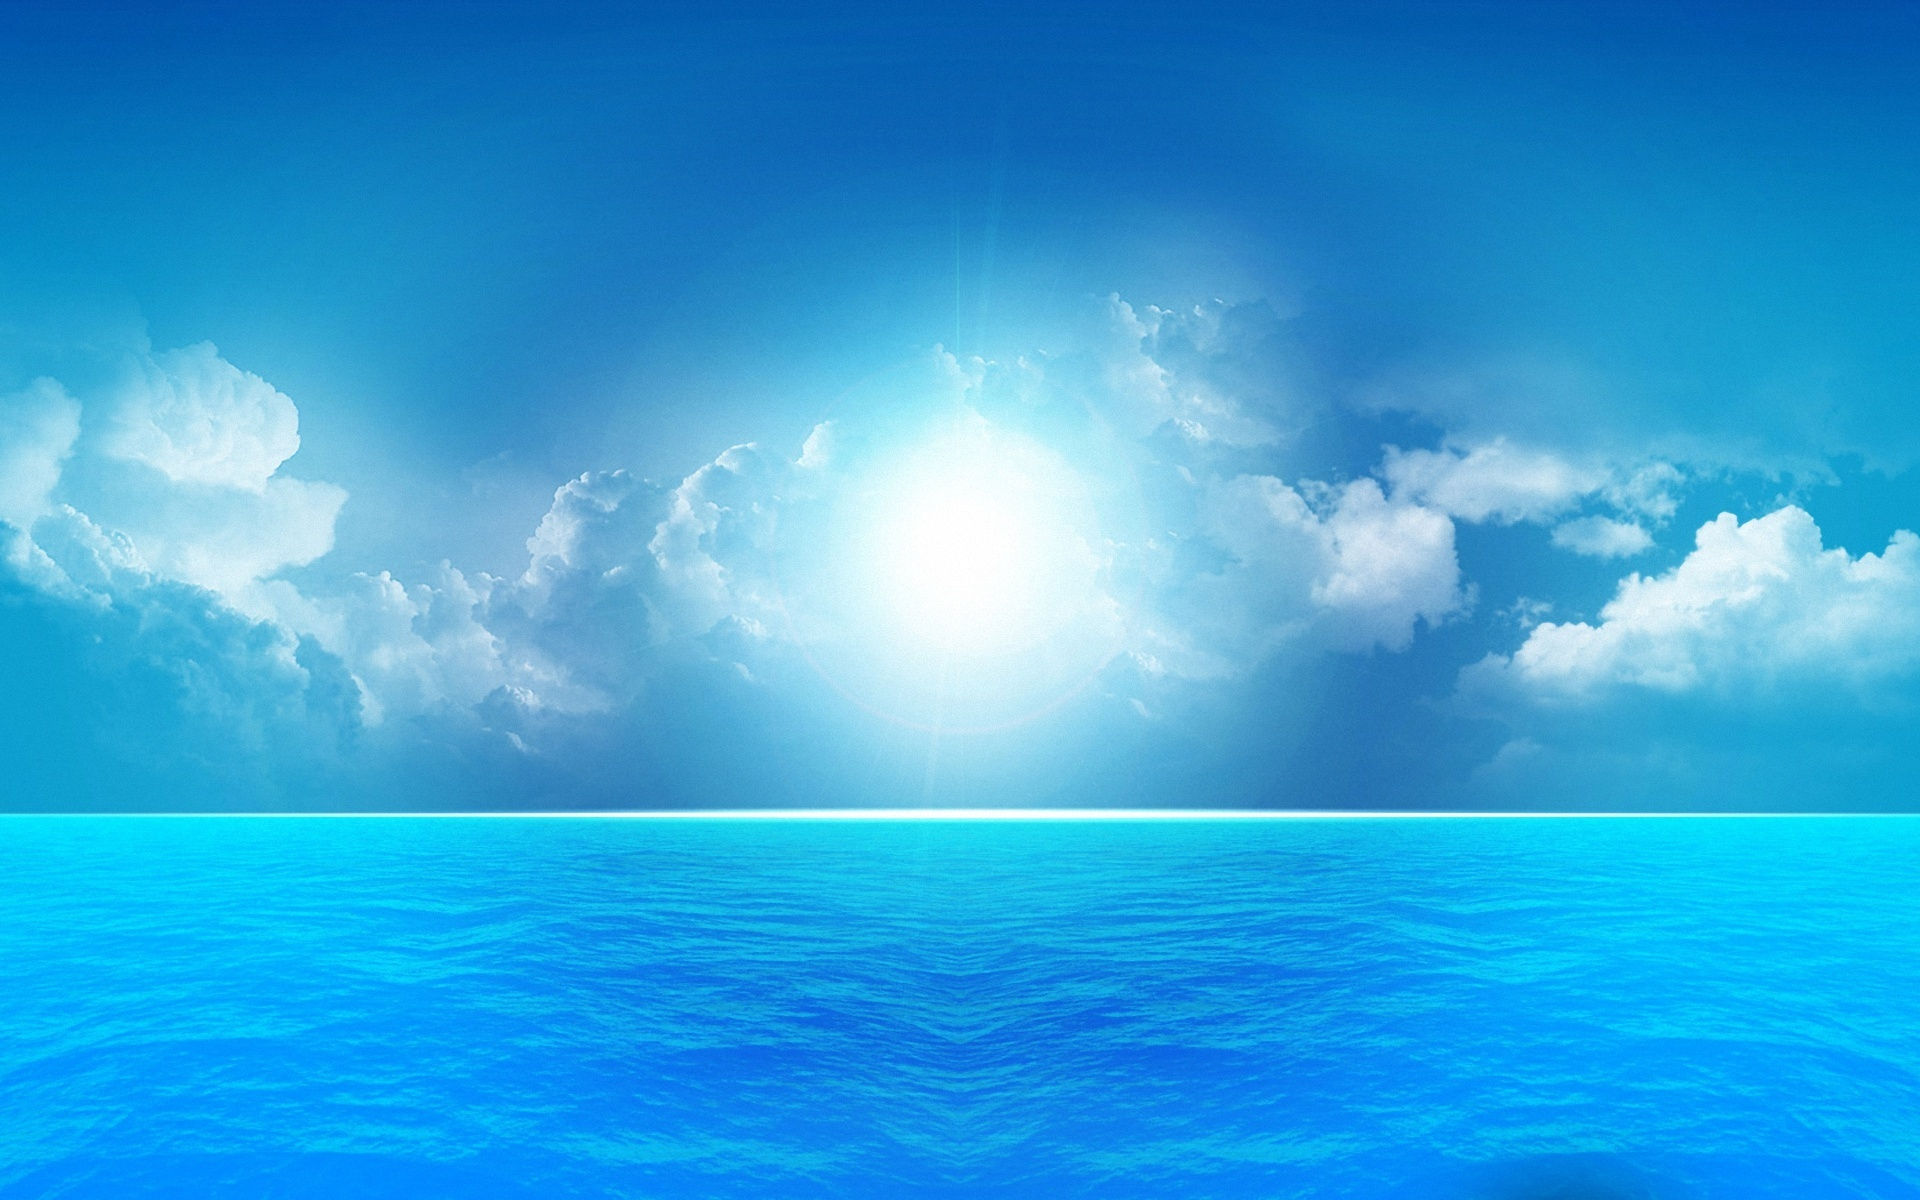 Beautiful Summer 2012   a blue day at sea Wallpapers   HD Wallpapers 1920x1200